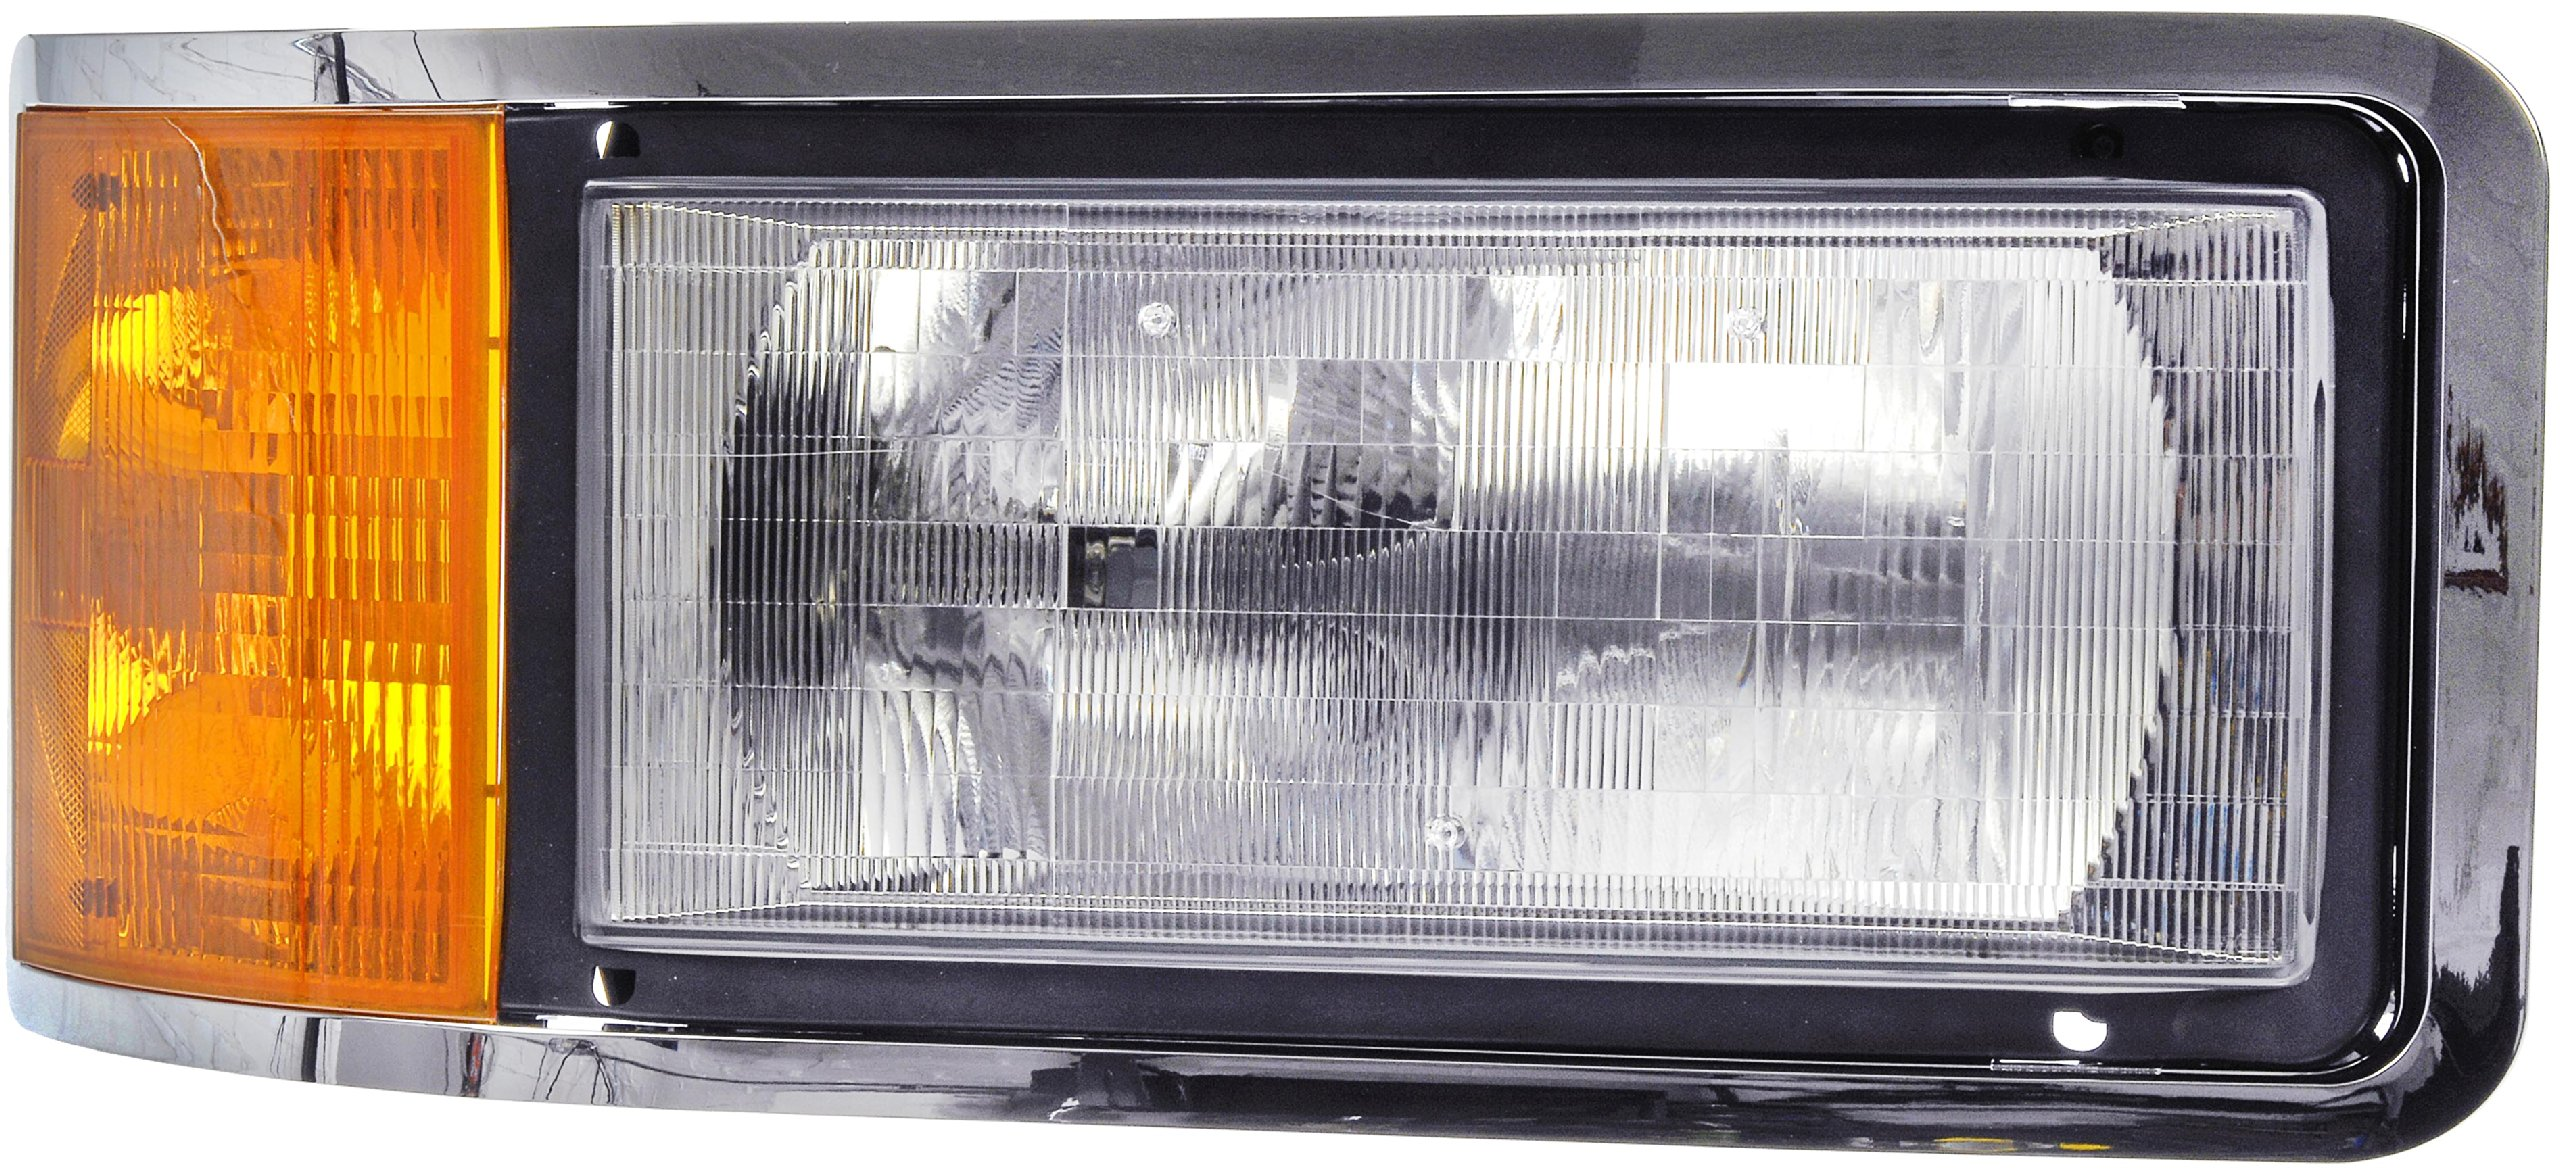 Dorman 888-5502 Driver Side Headlight Assembly For Select Mack Models by Dorman